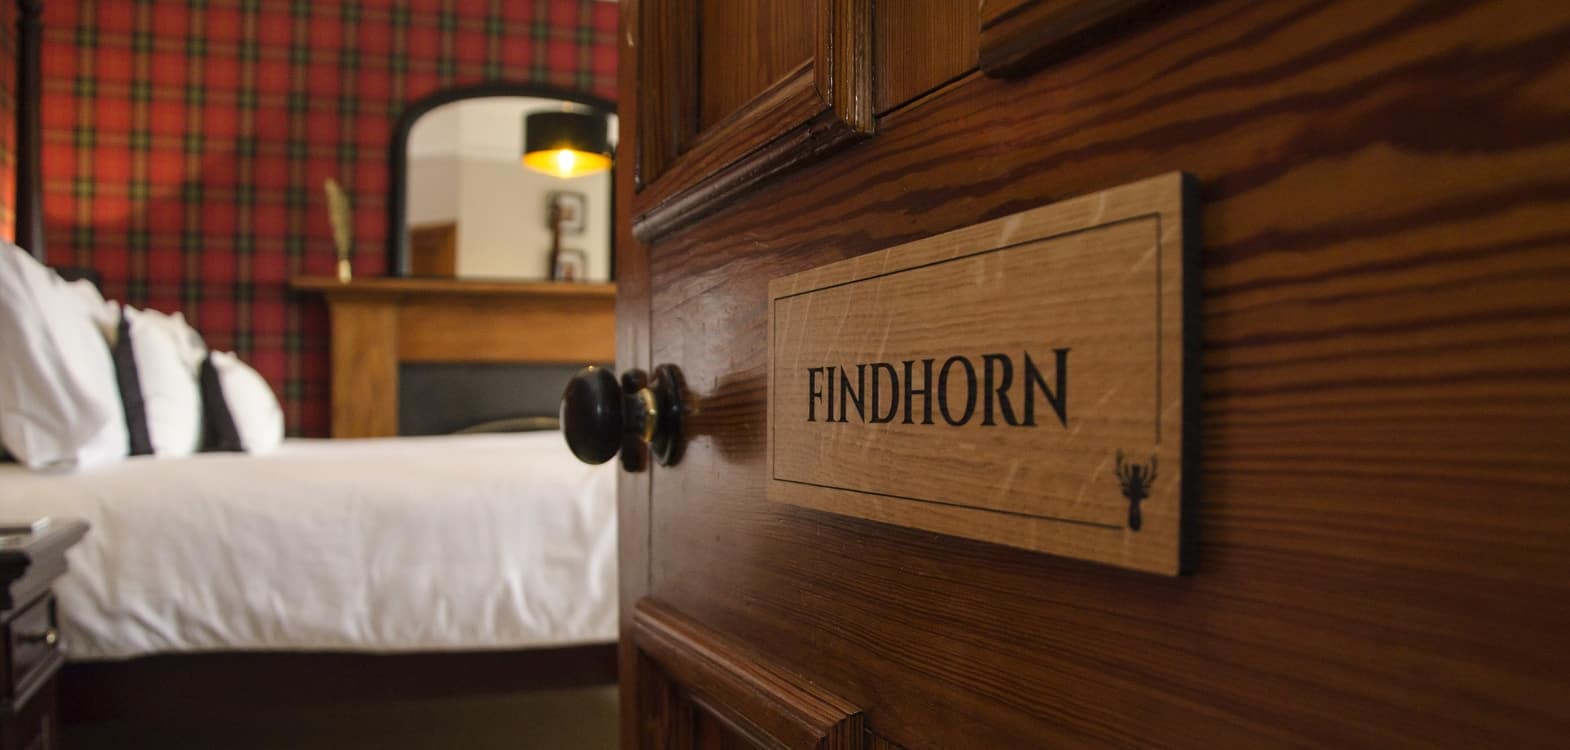 Findhorn door sign leading into the bedroom at Firhall Highland B&B onto bed with white bed coverings